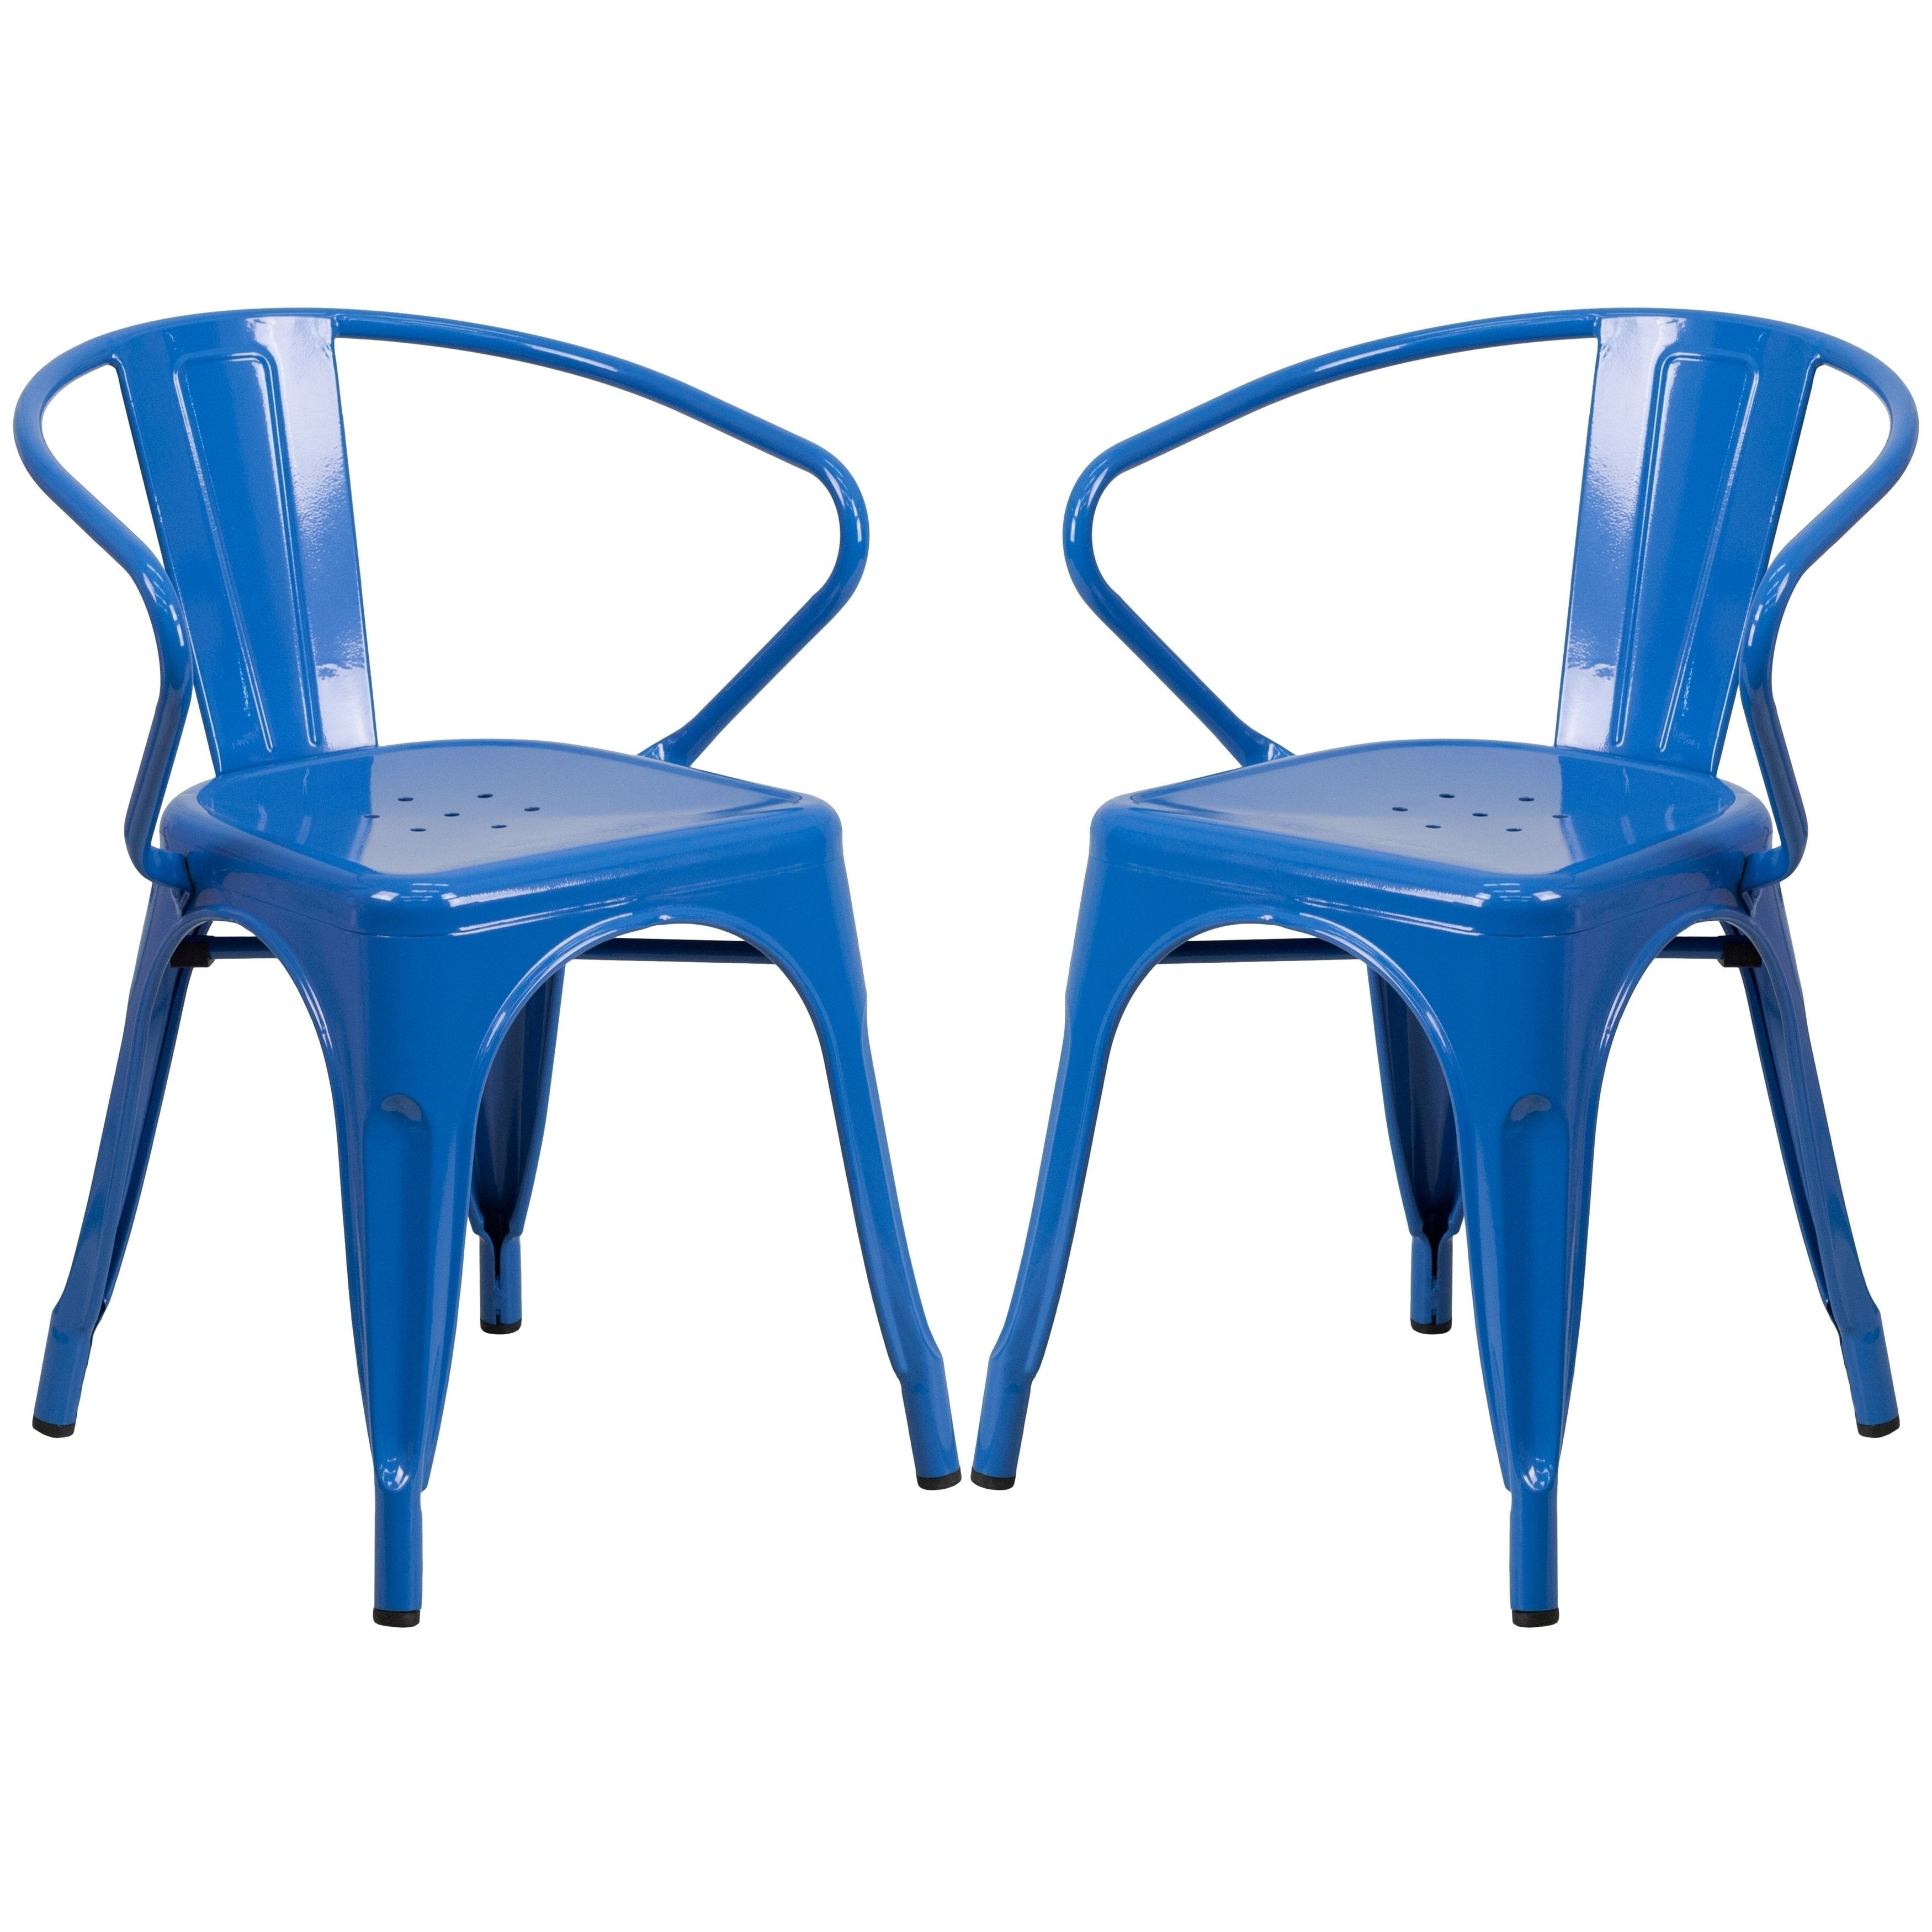 Blue Galvanized Metal Integrated Arm Chairs (